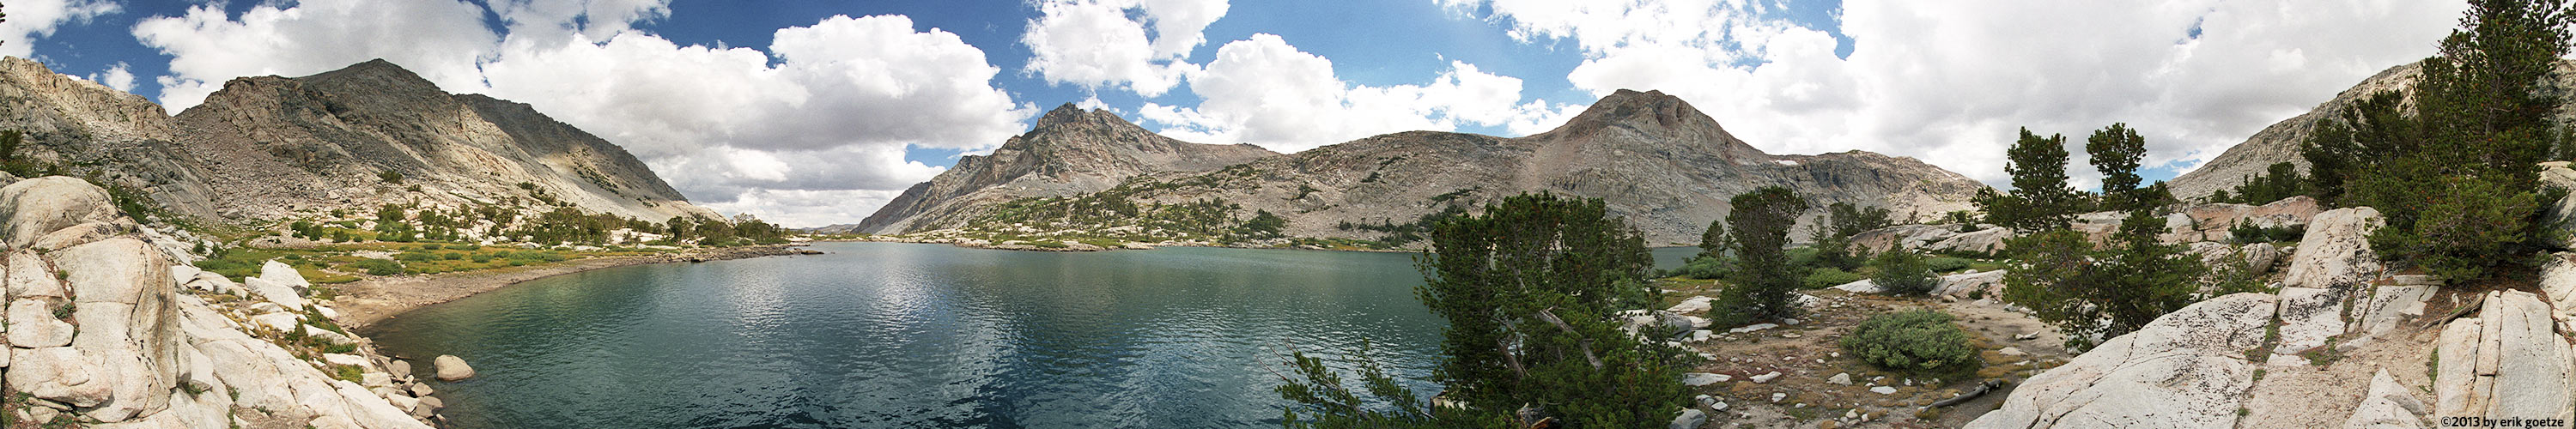 This 360 panorama is from Piute Lake, California?